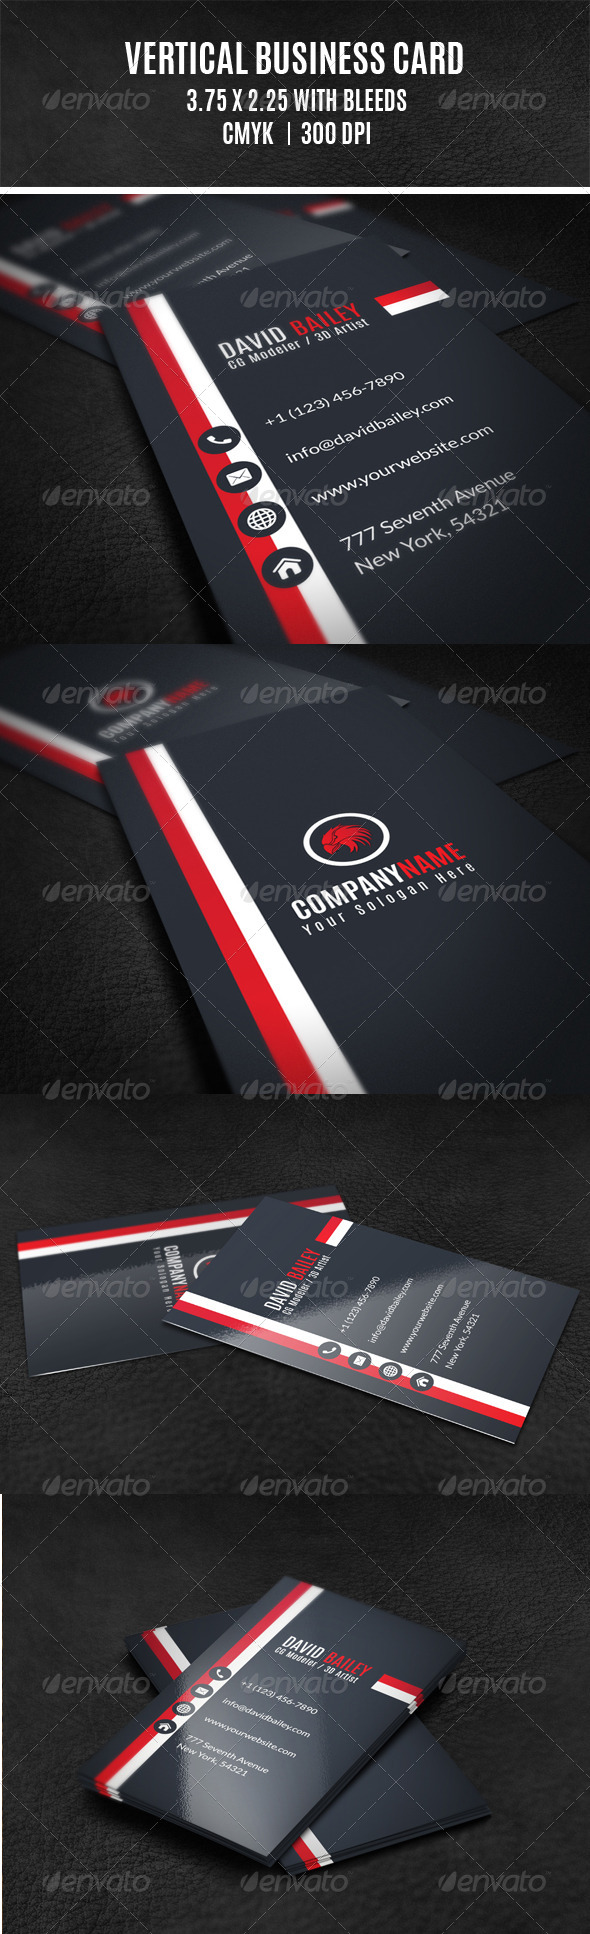 GraphicRiver Vertical Business Card 8173300